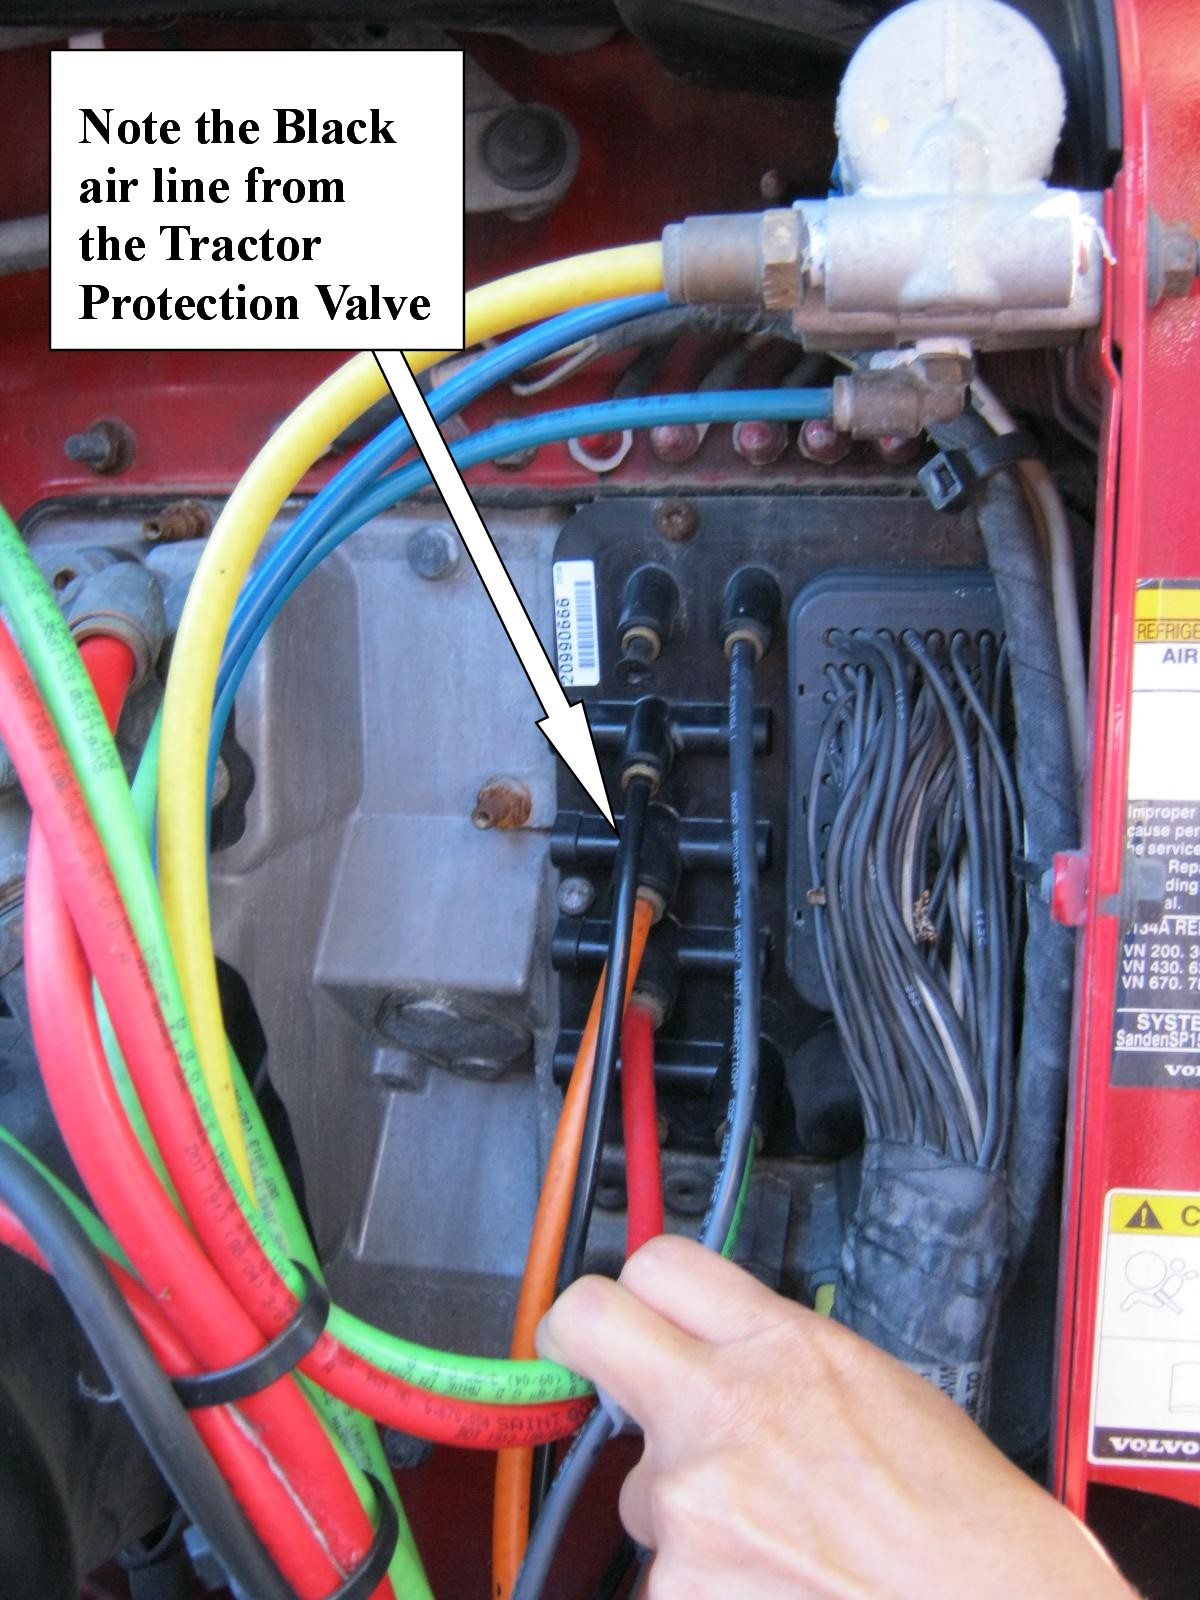 The photo was supplied by D and J (Doug) and it shows the Black air line  from the Tractor Protection Valve as described in the schematic above.